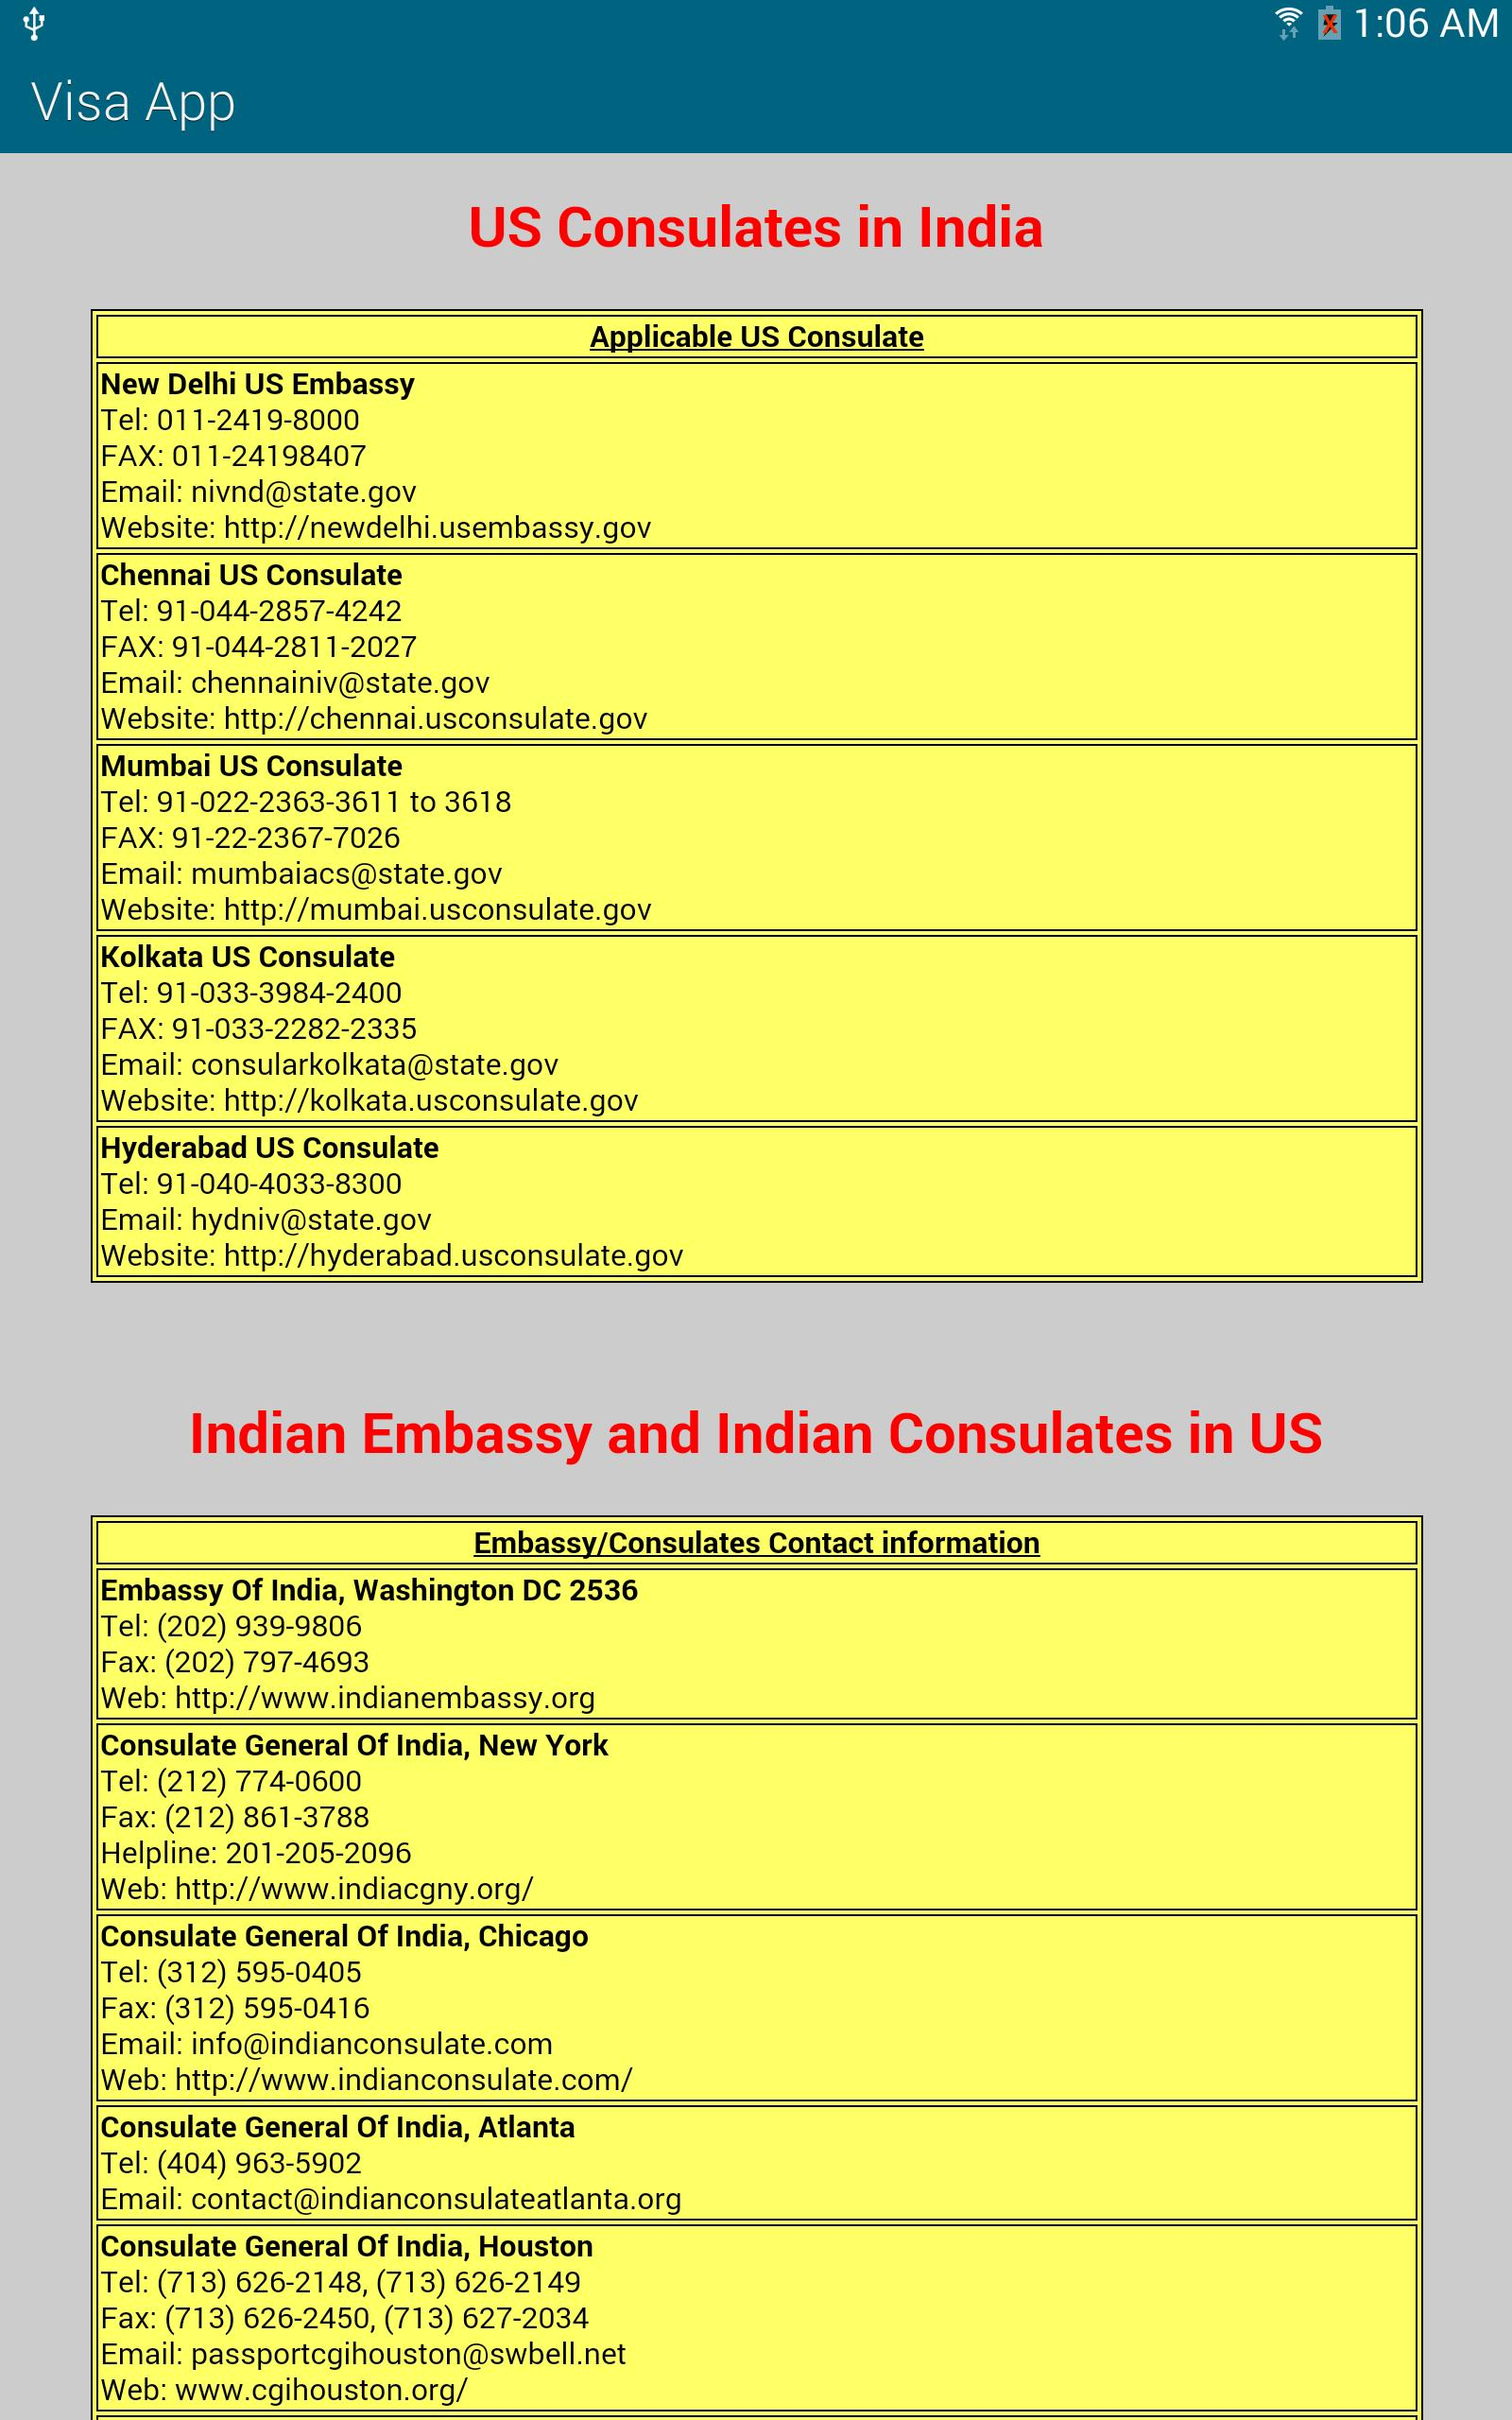 USA Visa Guide for Android - APK Download